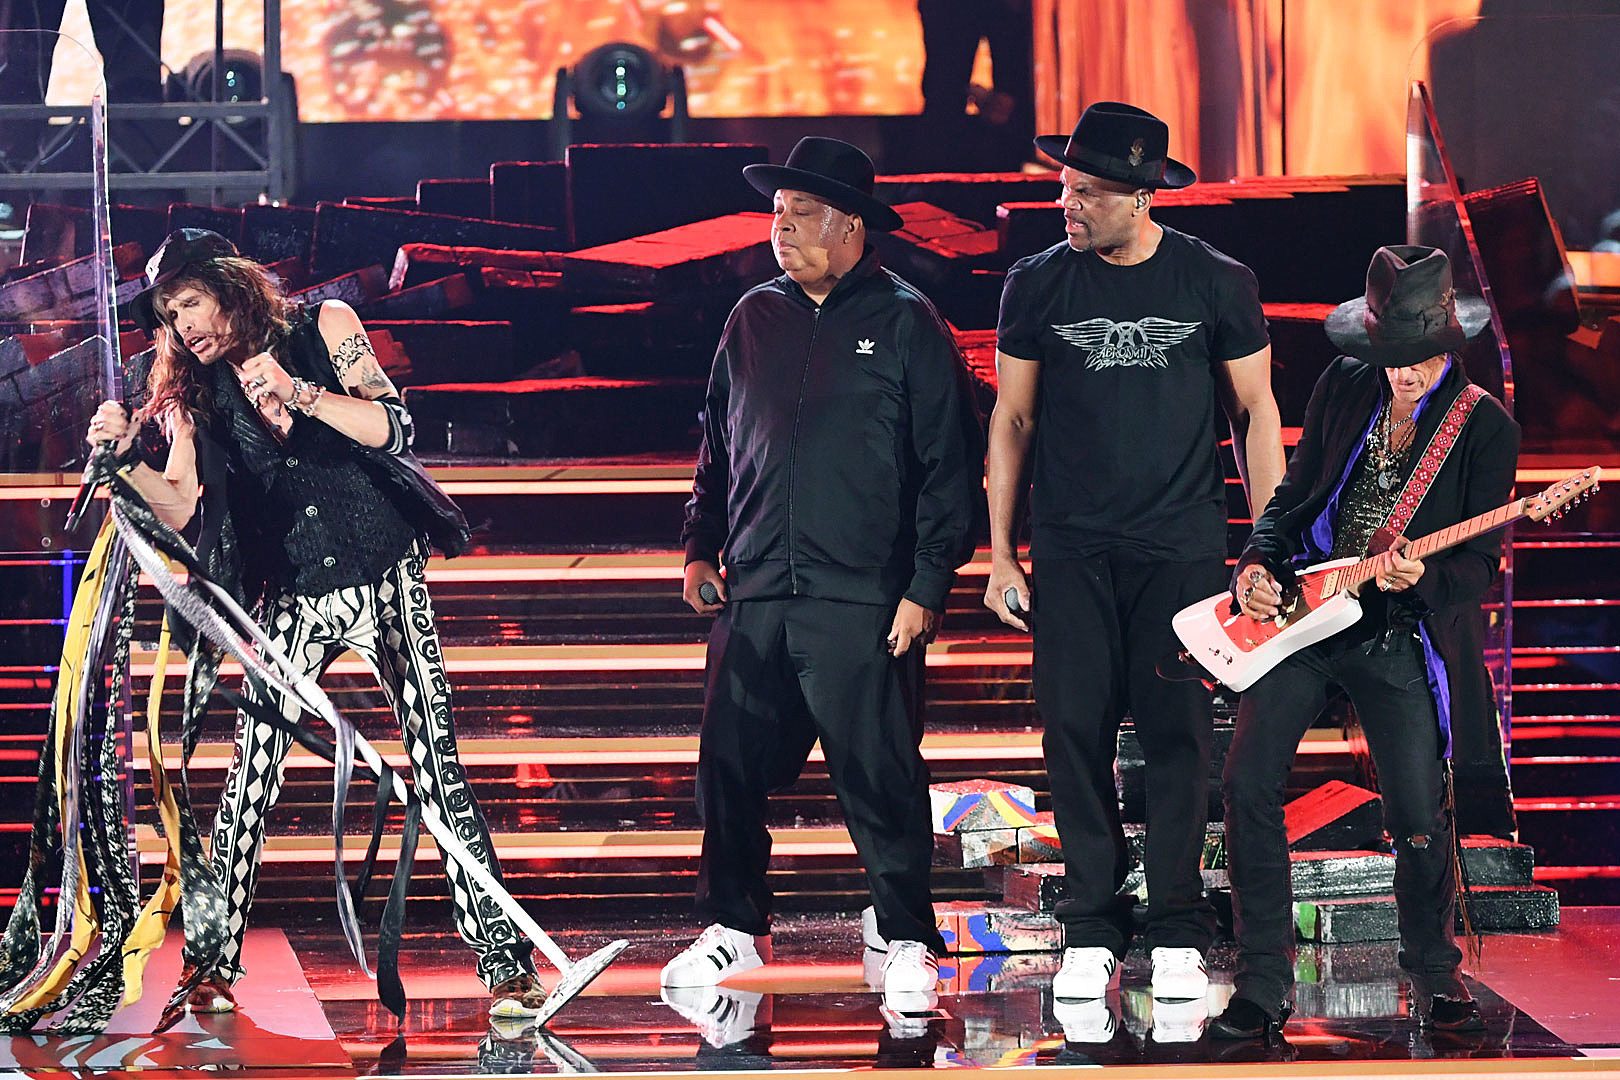 Aerosmith Recreate Run-D.M.C. 'Walk This Way' Collaboration at the 2020 Grammy Awards